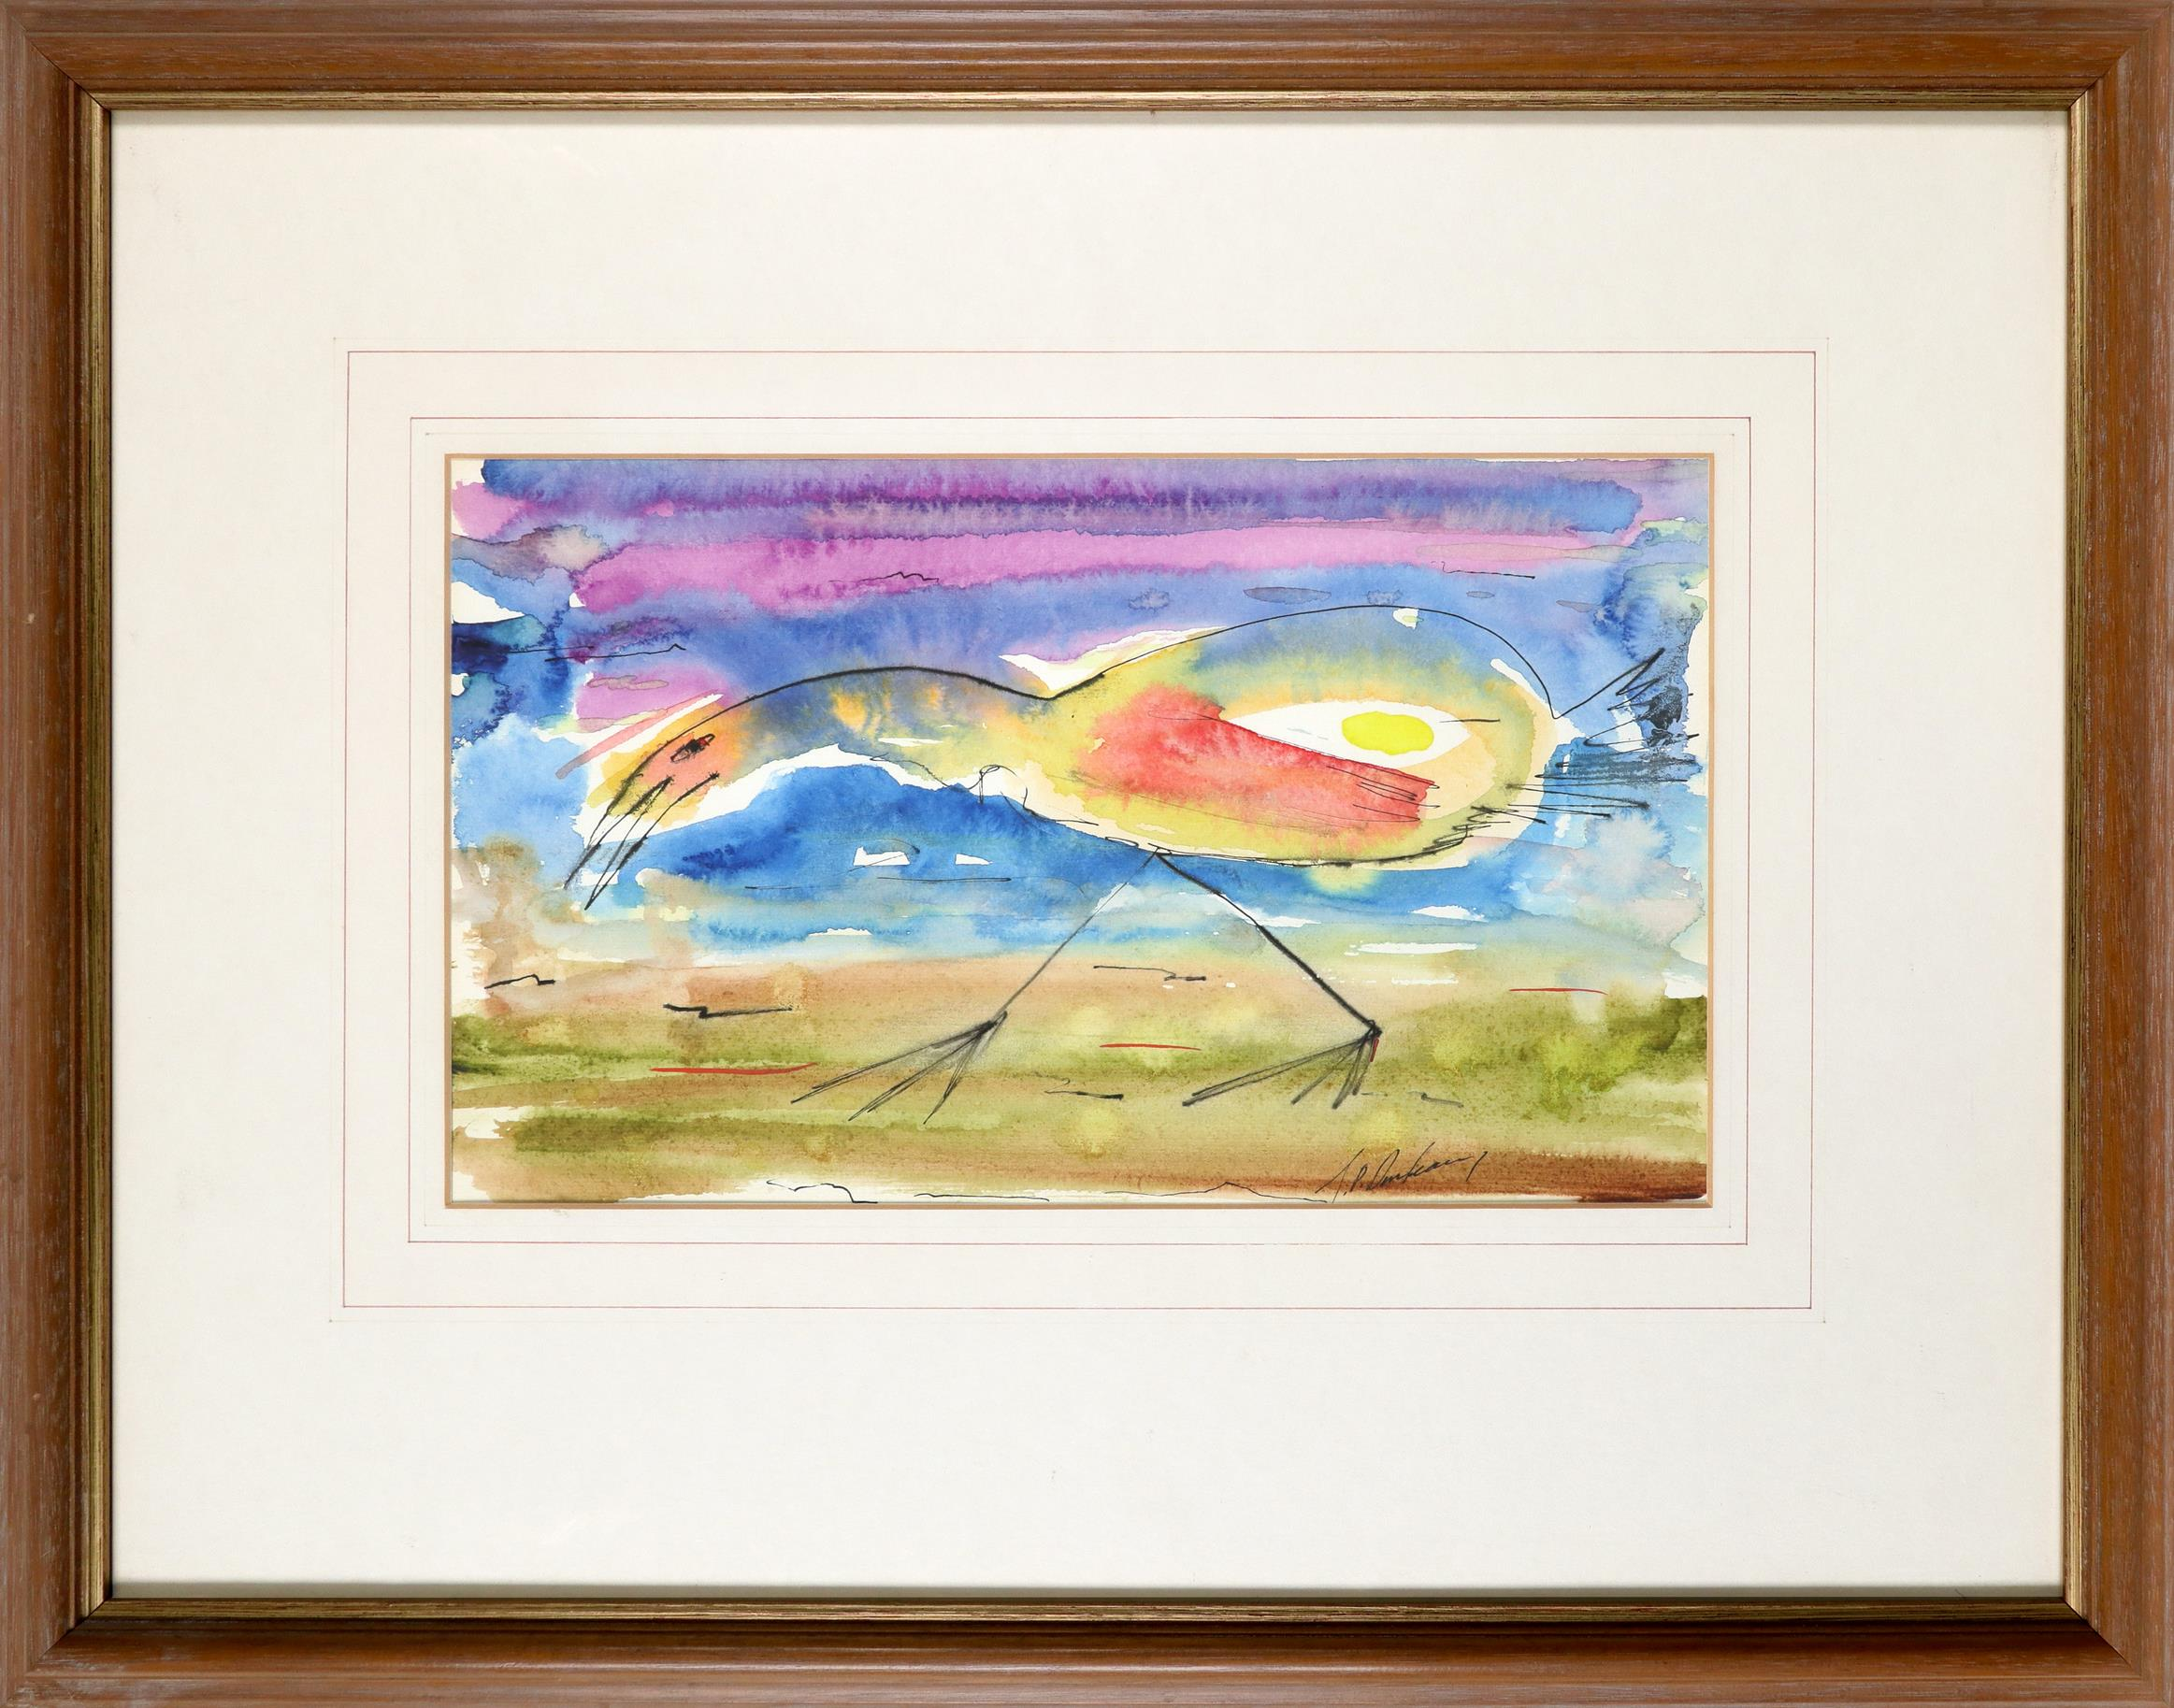 ‡J. P. Donleavy (Irish 1926-2017) Bird Signed J.P.Donleavy (lower right) Watercolour, pen and ink - Image 2 of 3